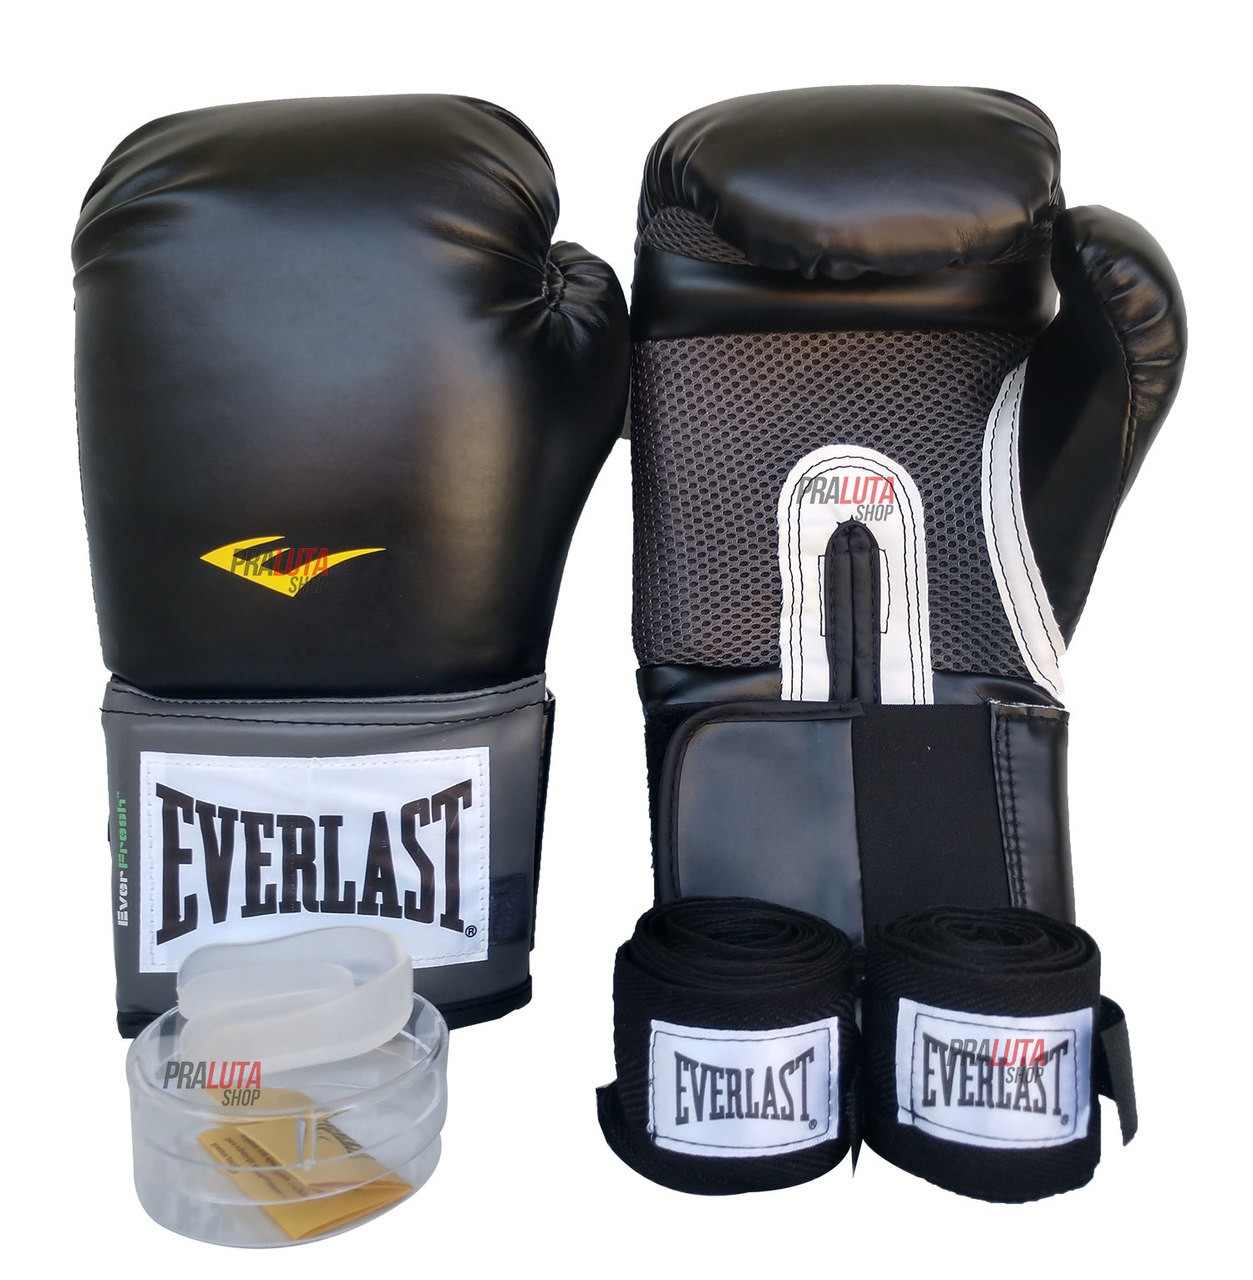 Kit de Boxe / Muay Thai 14oz - Preto - Training - Everlast  - PRALUTA SHOP